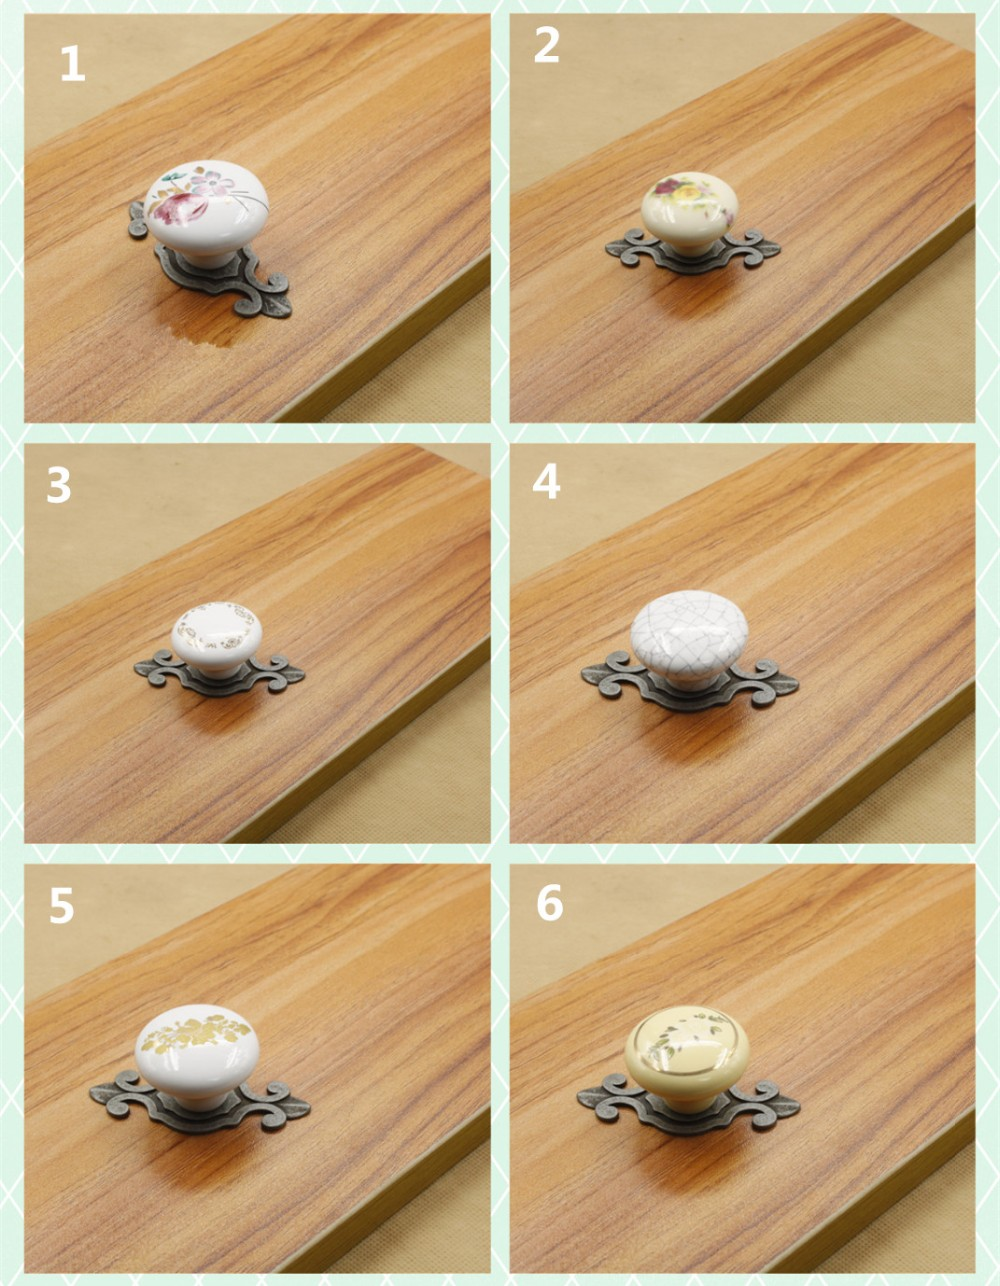 10 pcs/lot - elegant flower crack yellow ceramic single door knob/pull with ancient silver base for cabinet kitchen drawer(China (Mainland))